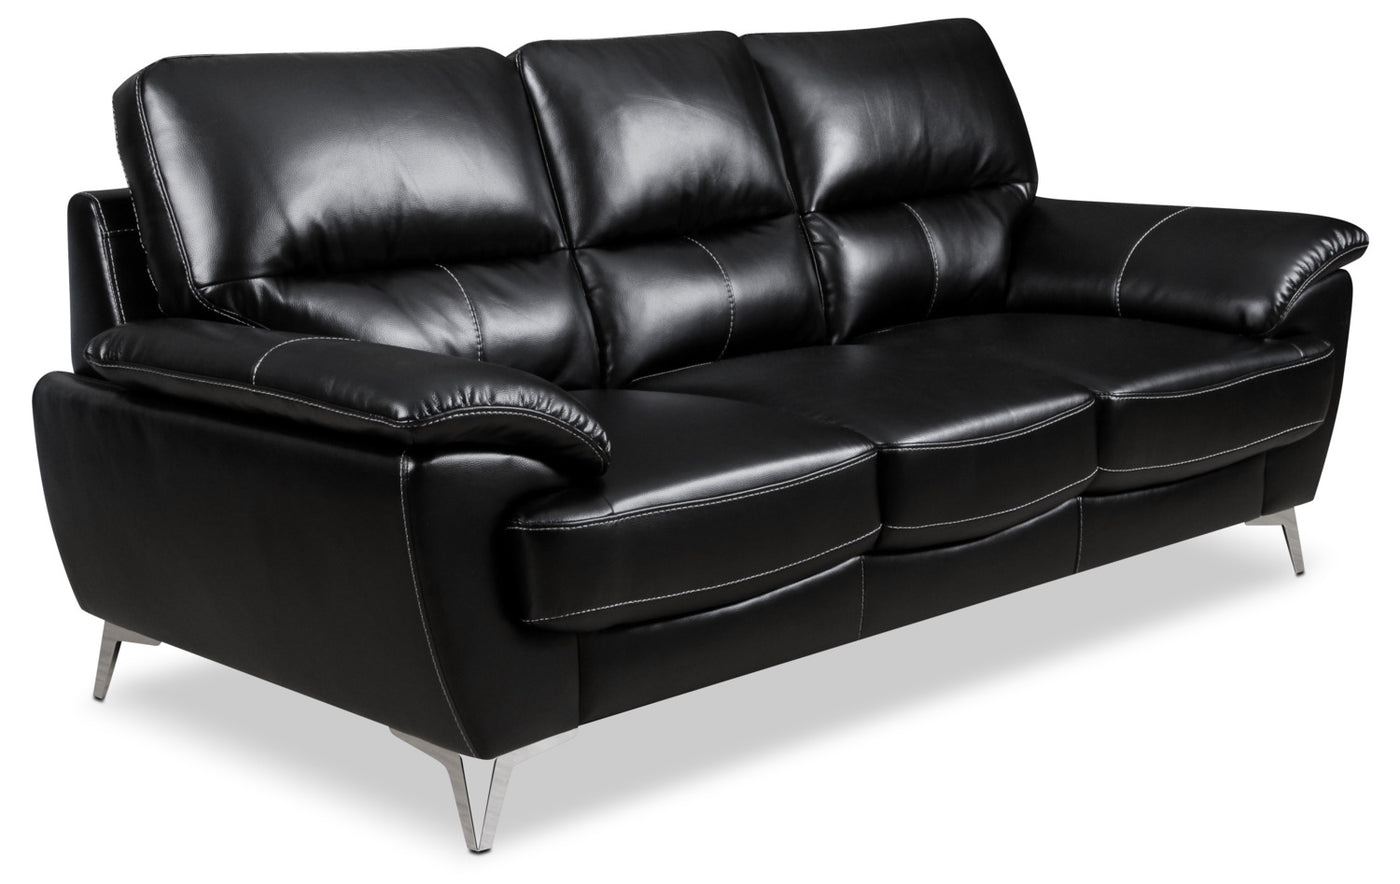 Olivia Leather Look Fabric Sofa Black The Brick